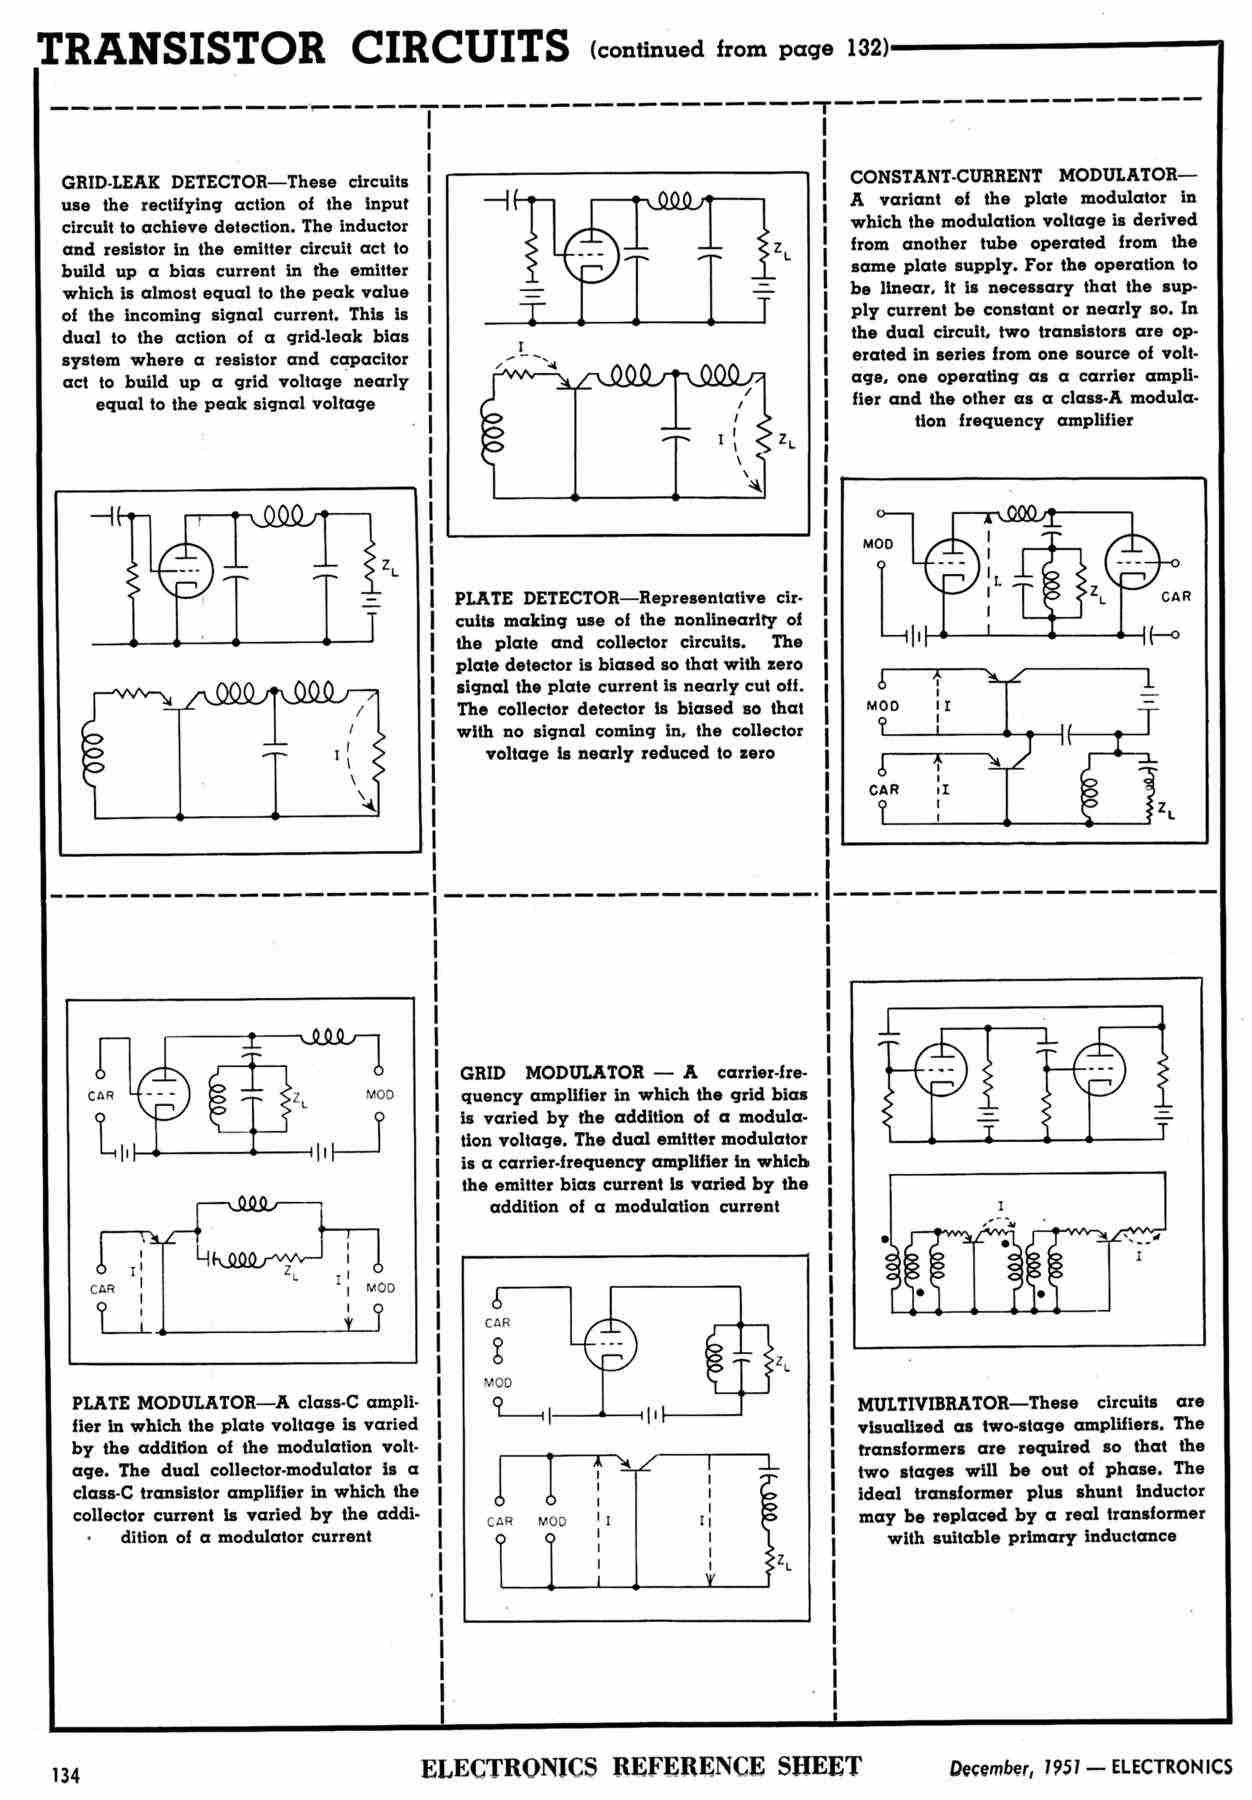 Early Transistor Days Amplifier Circuit Design Editors Interviewed About Pricing And Availability Of Transistors The Six Larger